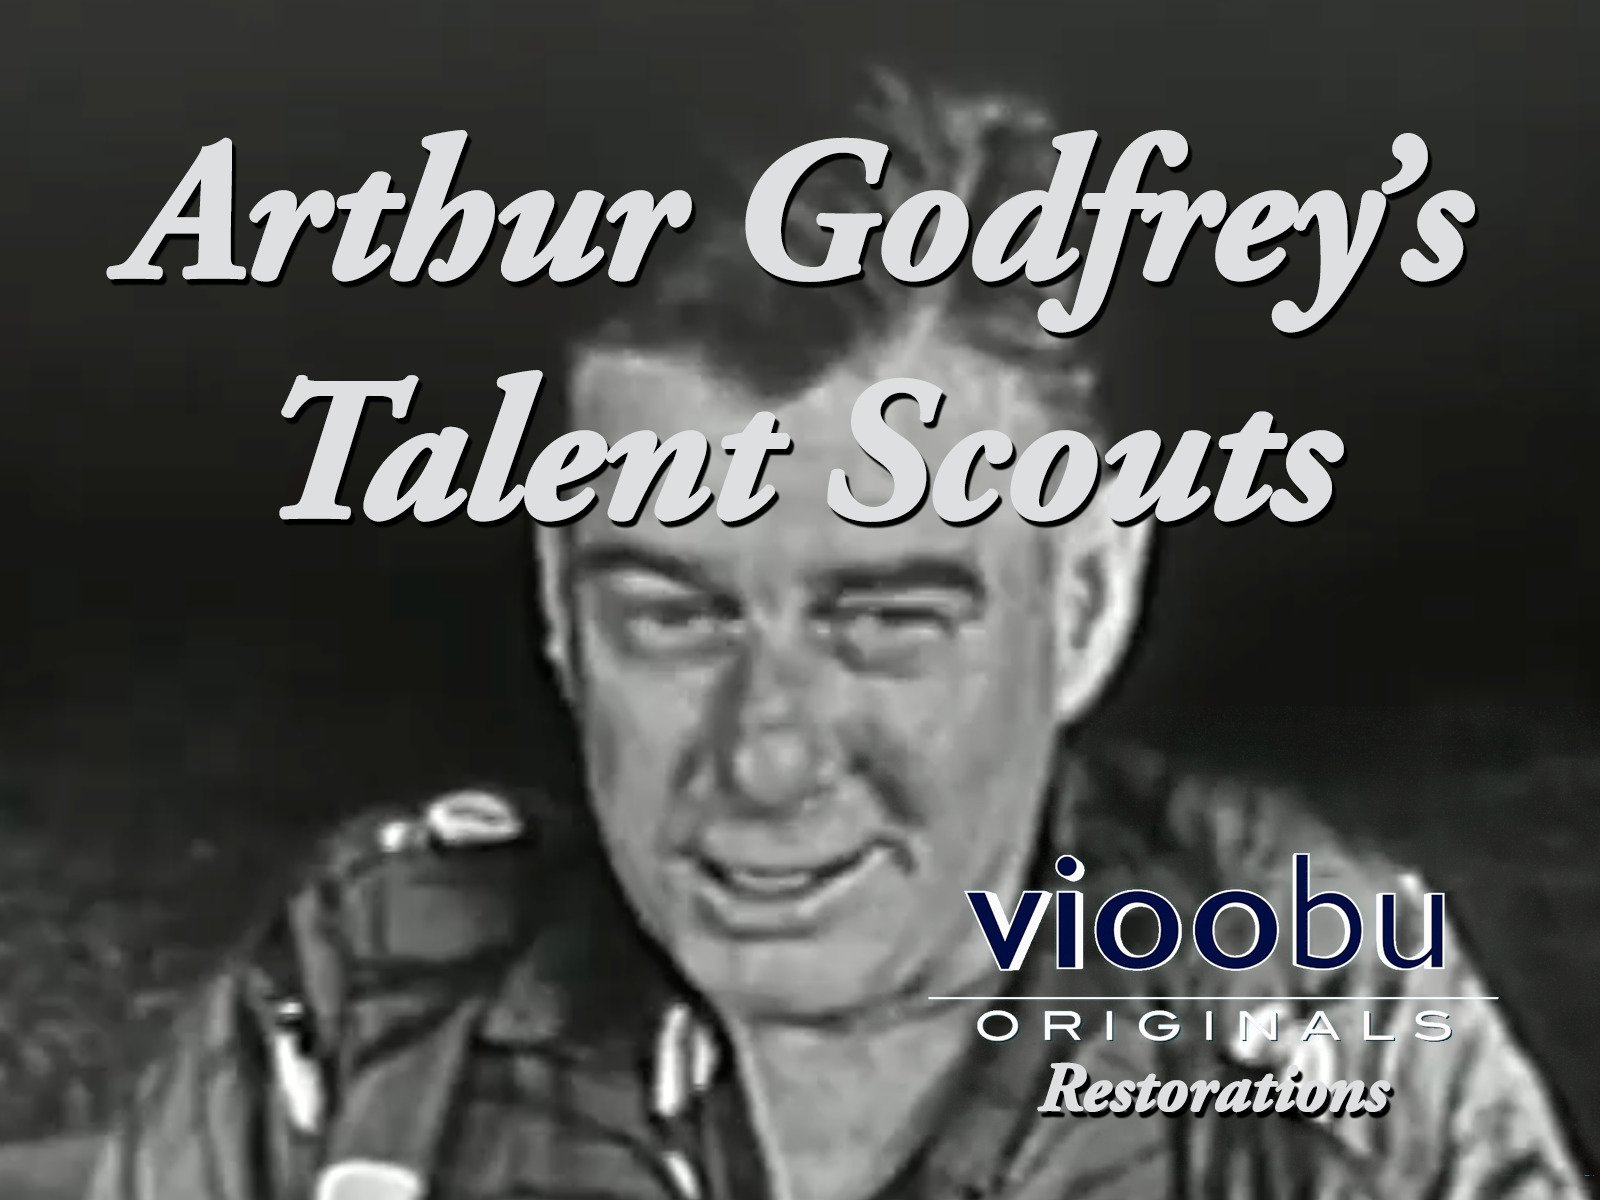 Arthur Godfrey's Talent Scouts - Season 1